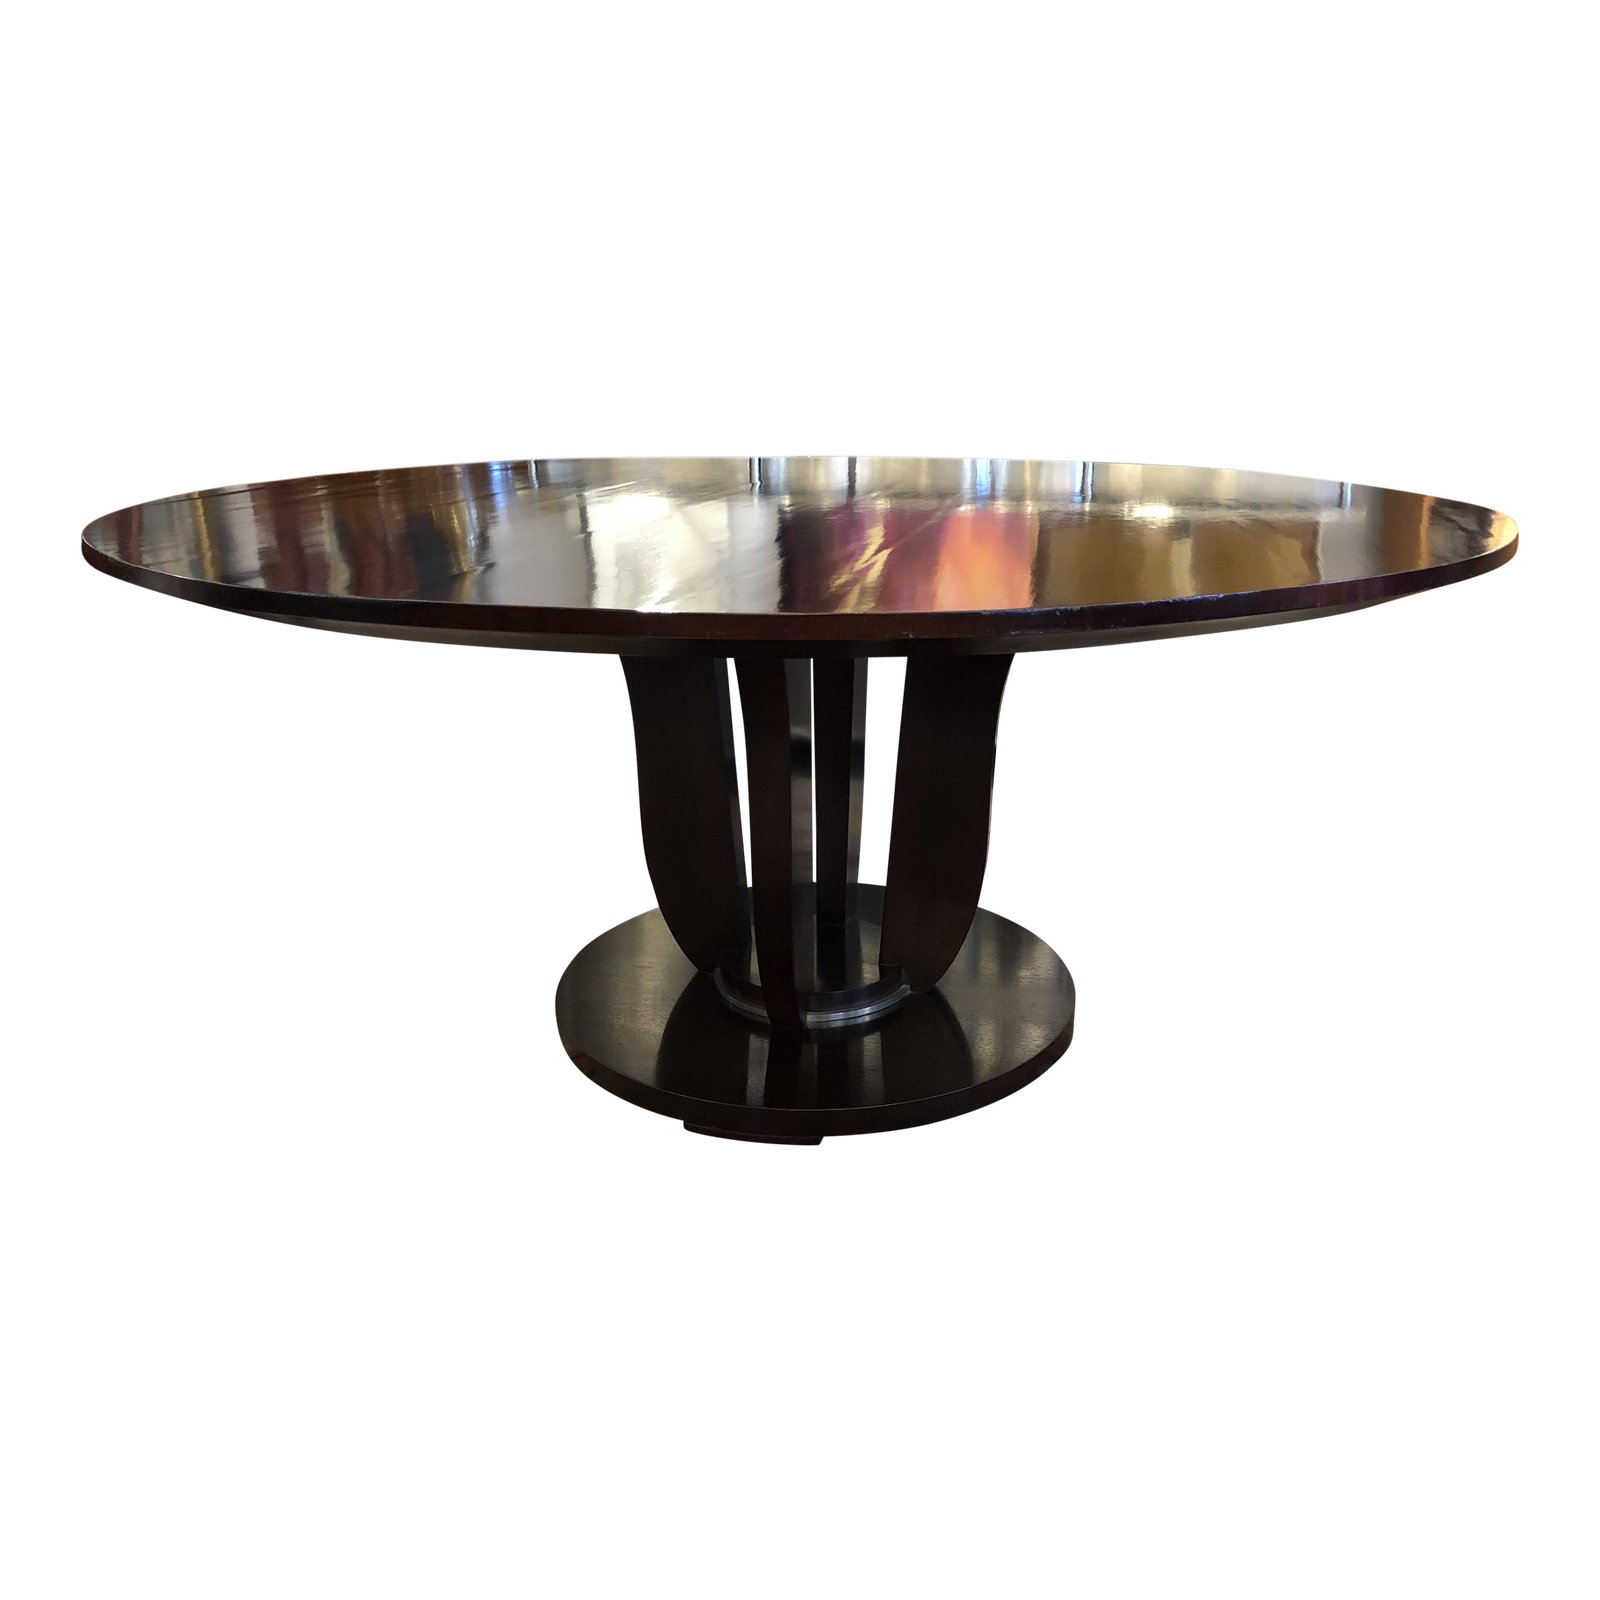 Barbara Barry Gueridon Dining Table By Baker Furniture Original Price 6 397